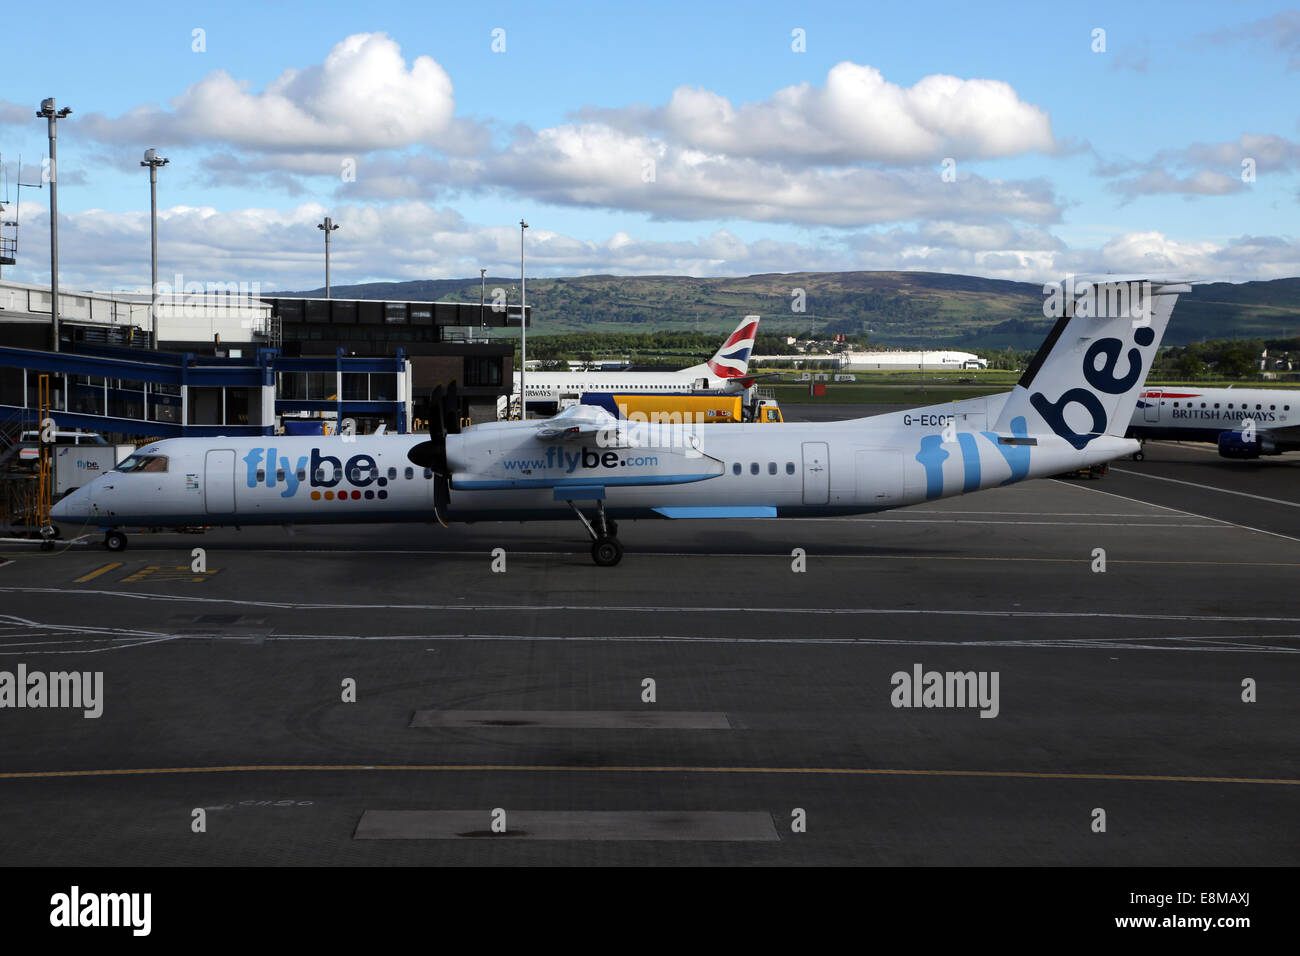 Flybe Aeroplane At Gatwick Airport Surrey England - Stock Image